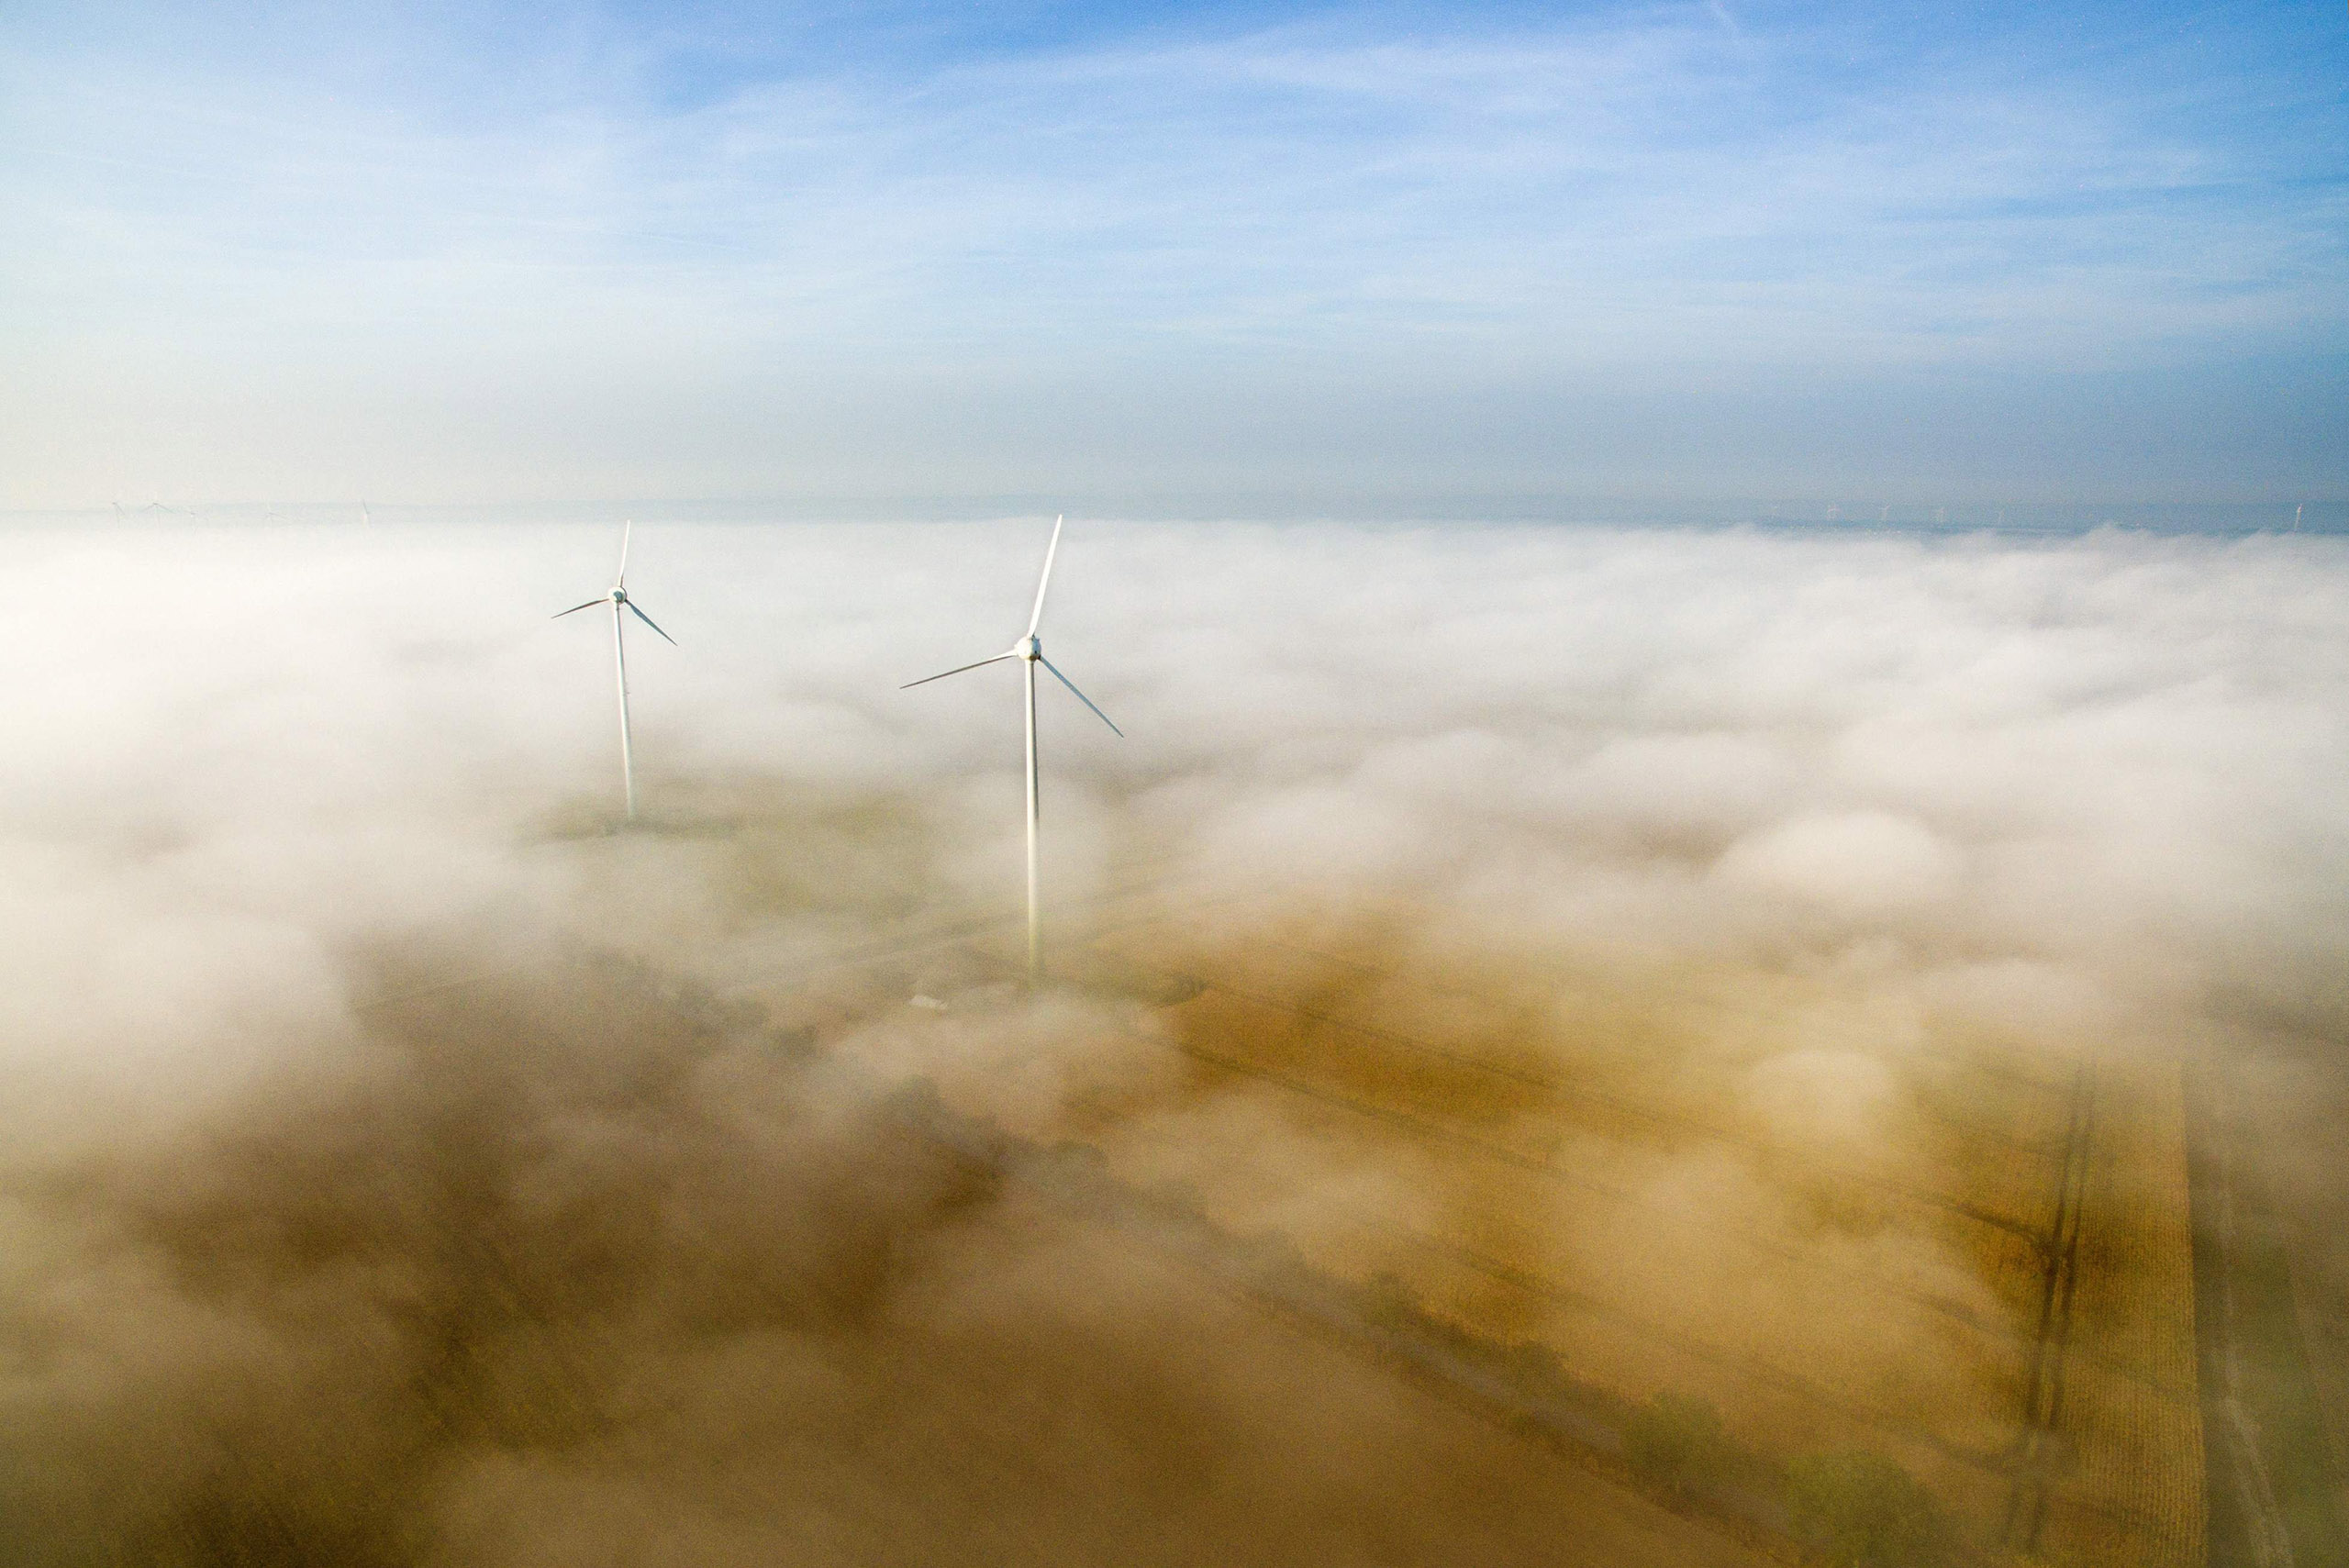 Windmills are seen through the morning mist rising from a field in Sehnde near Hanover, northern Germany, on Sept. 22, 2016.